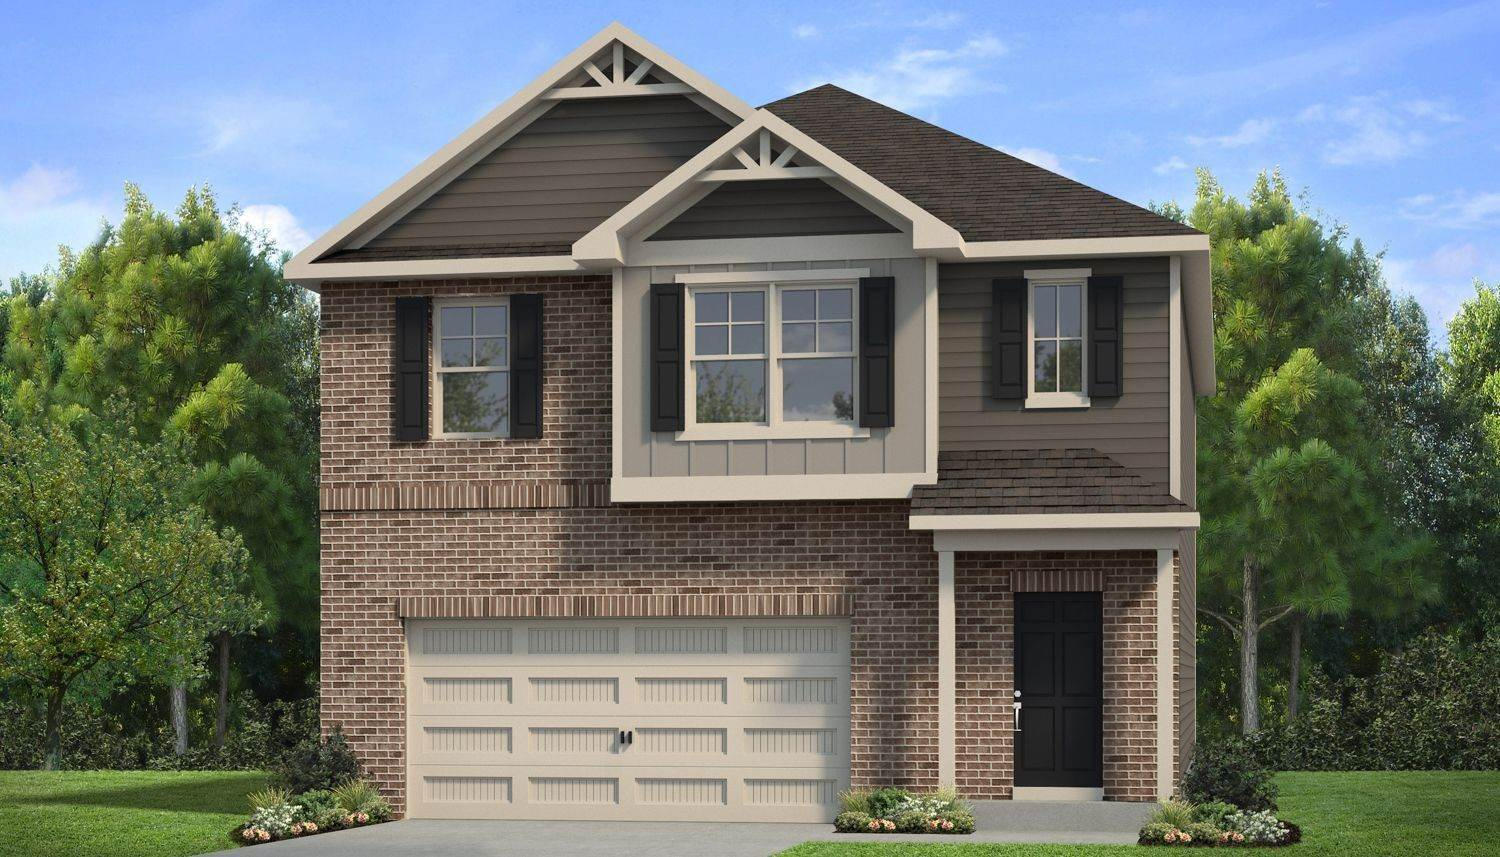 Single Family for Sale at Towne Center - The Layla Ii 11695 Brightside Parkway HAMPTON, GEORGIA 30228 UNITED STATES